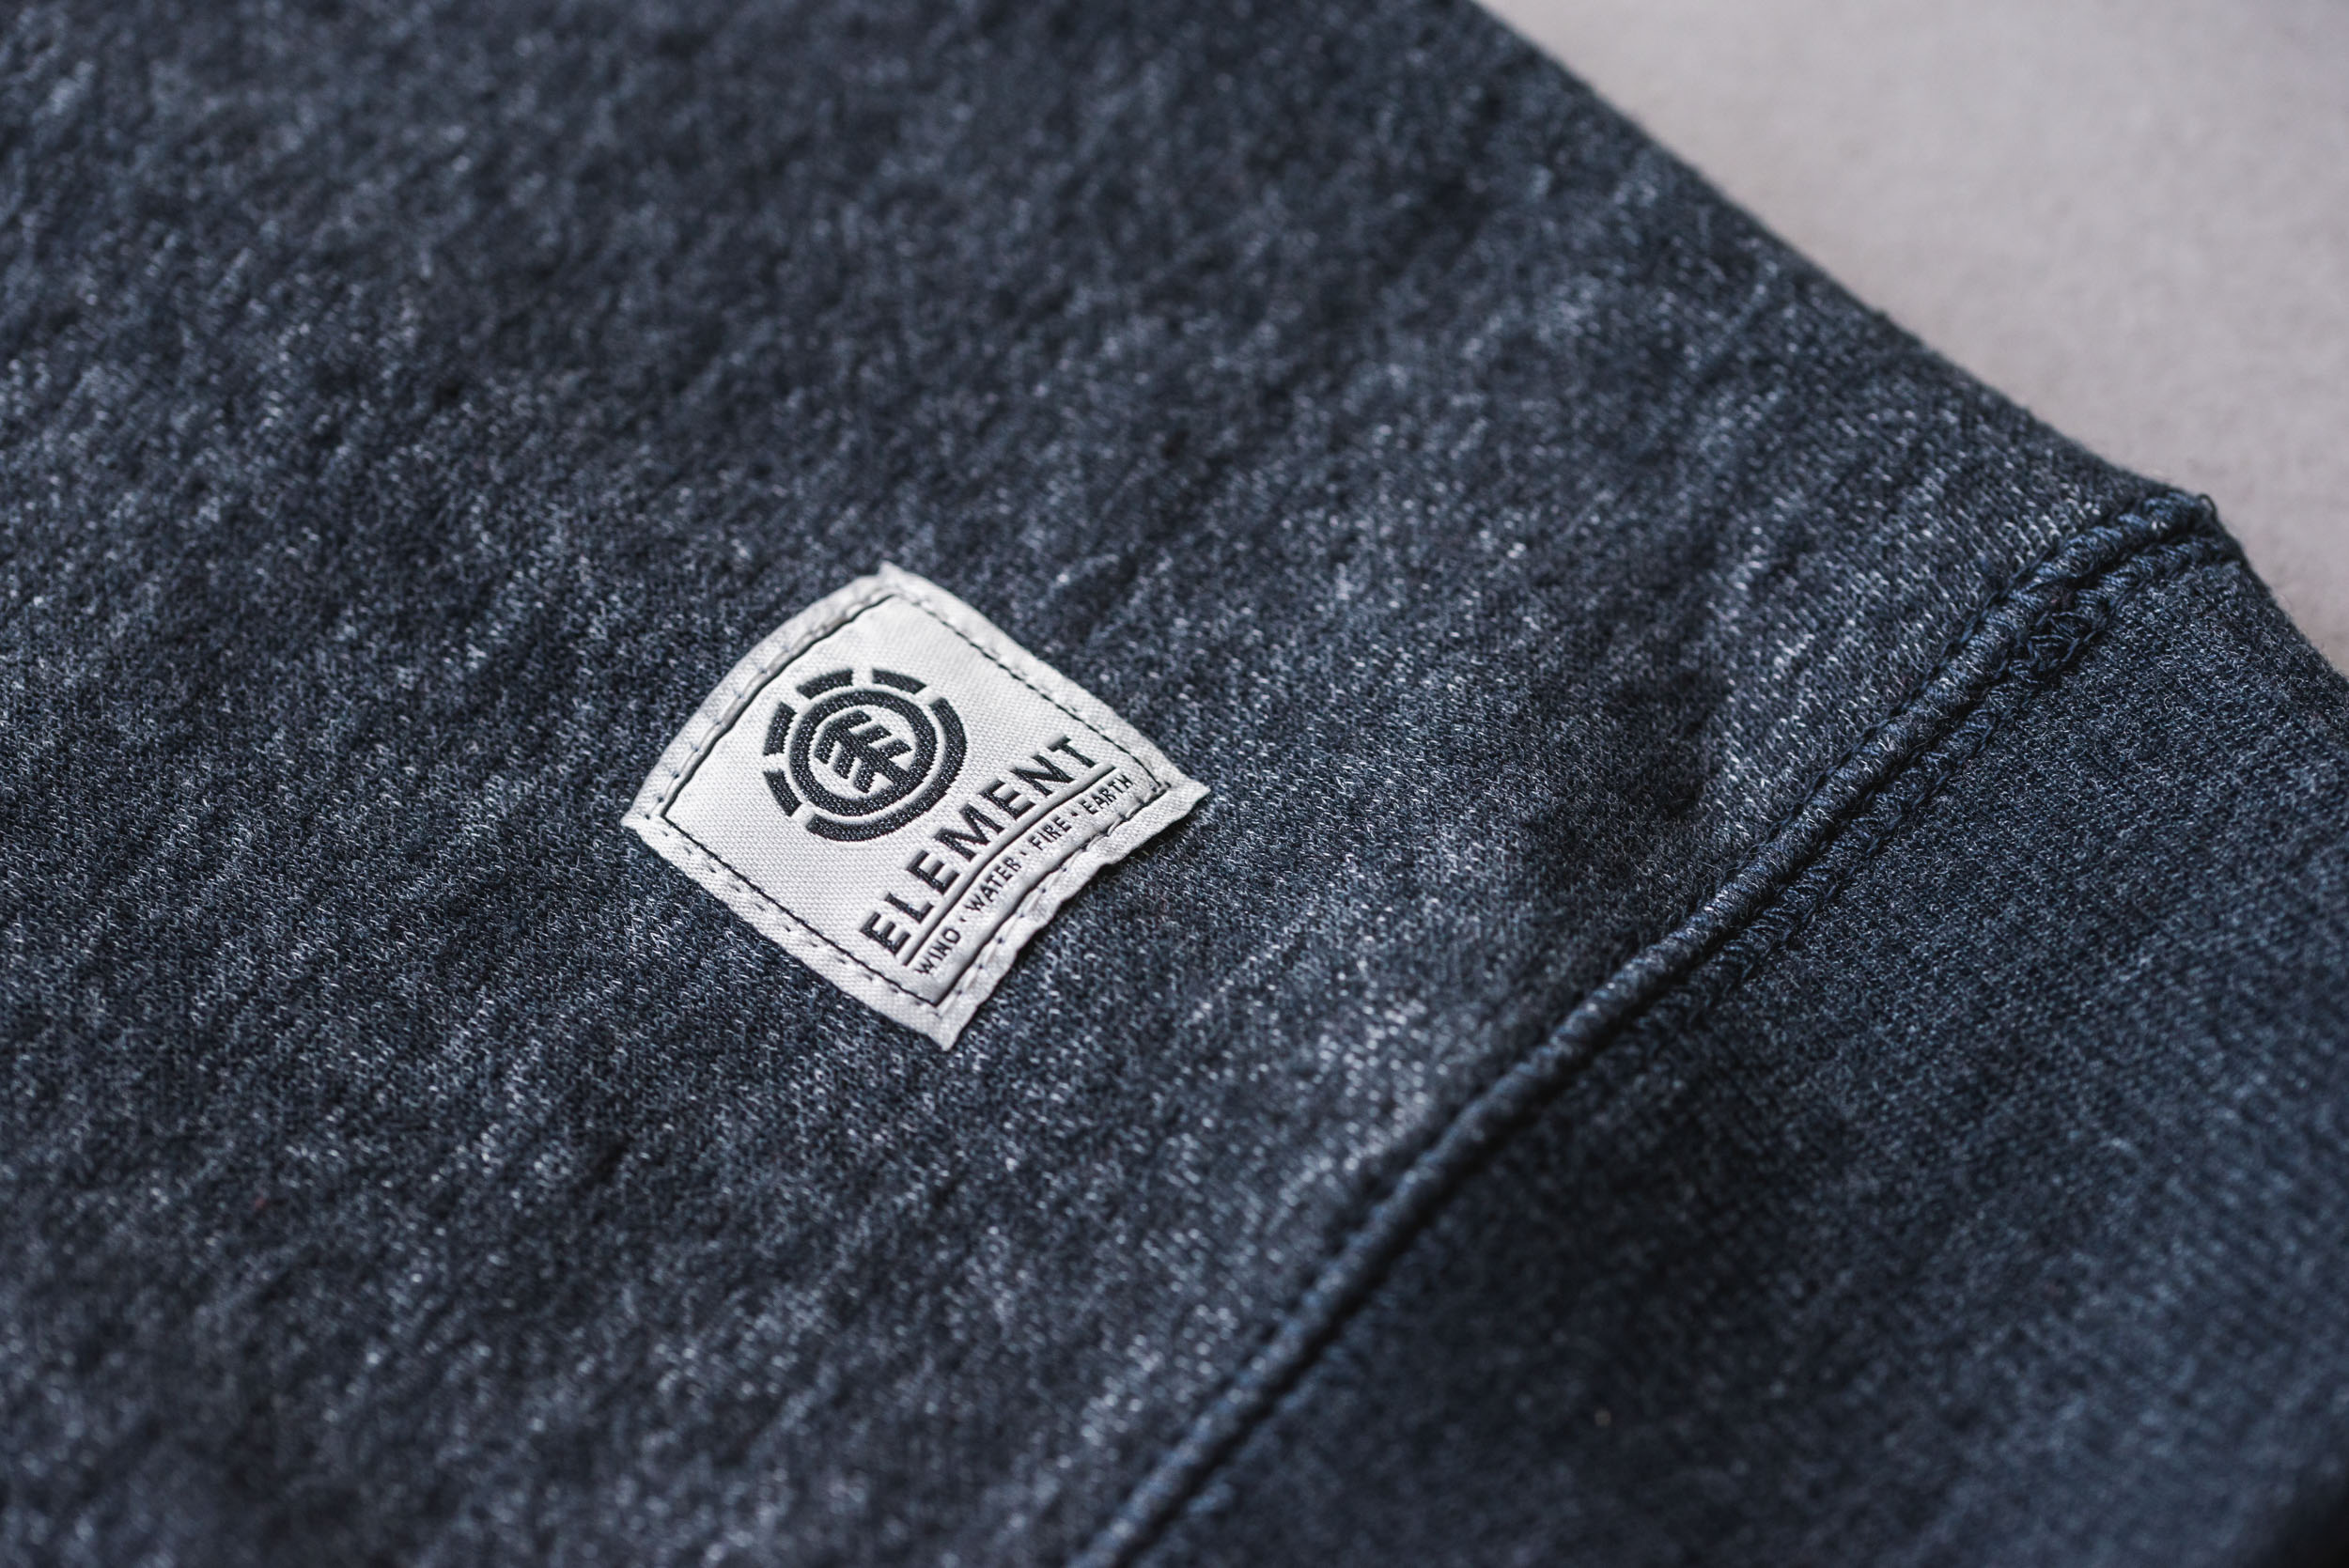 Element Label & Nähte Details